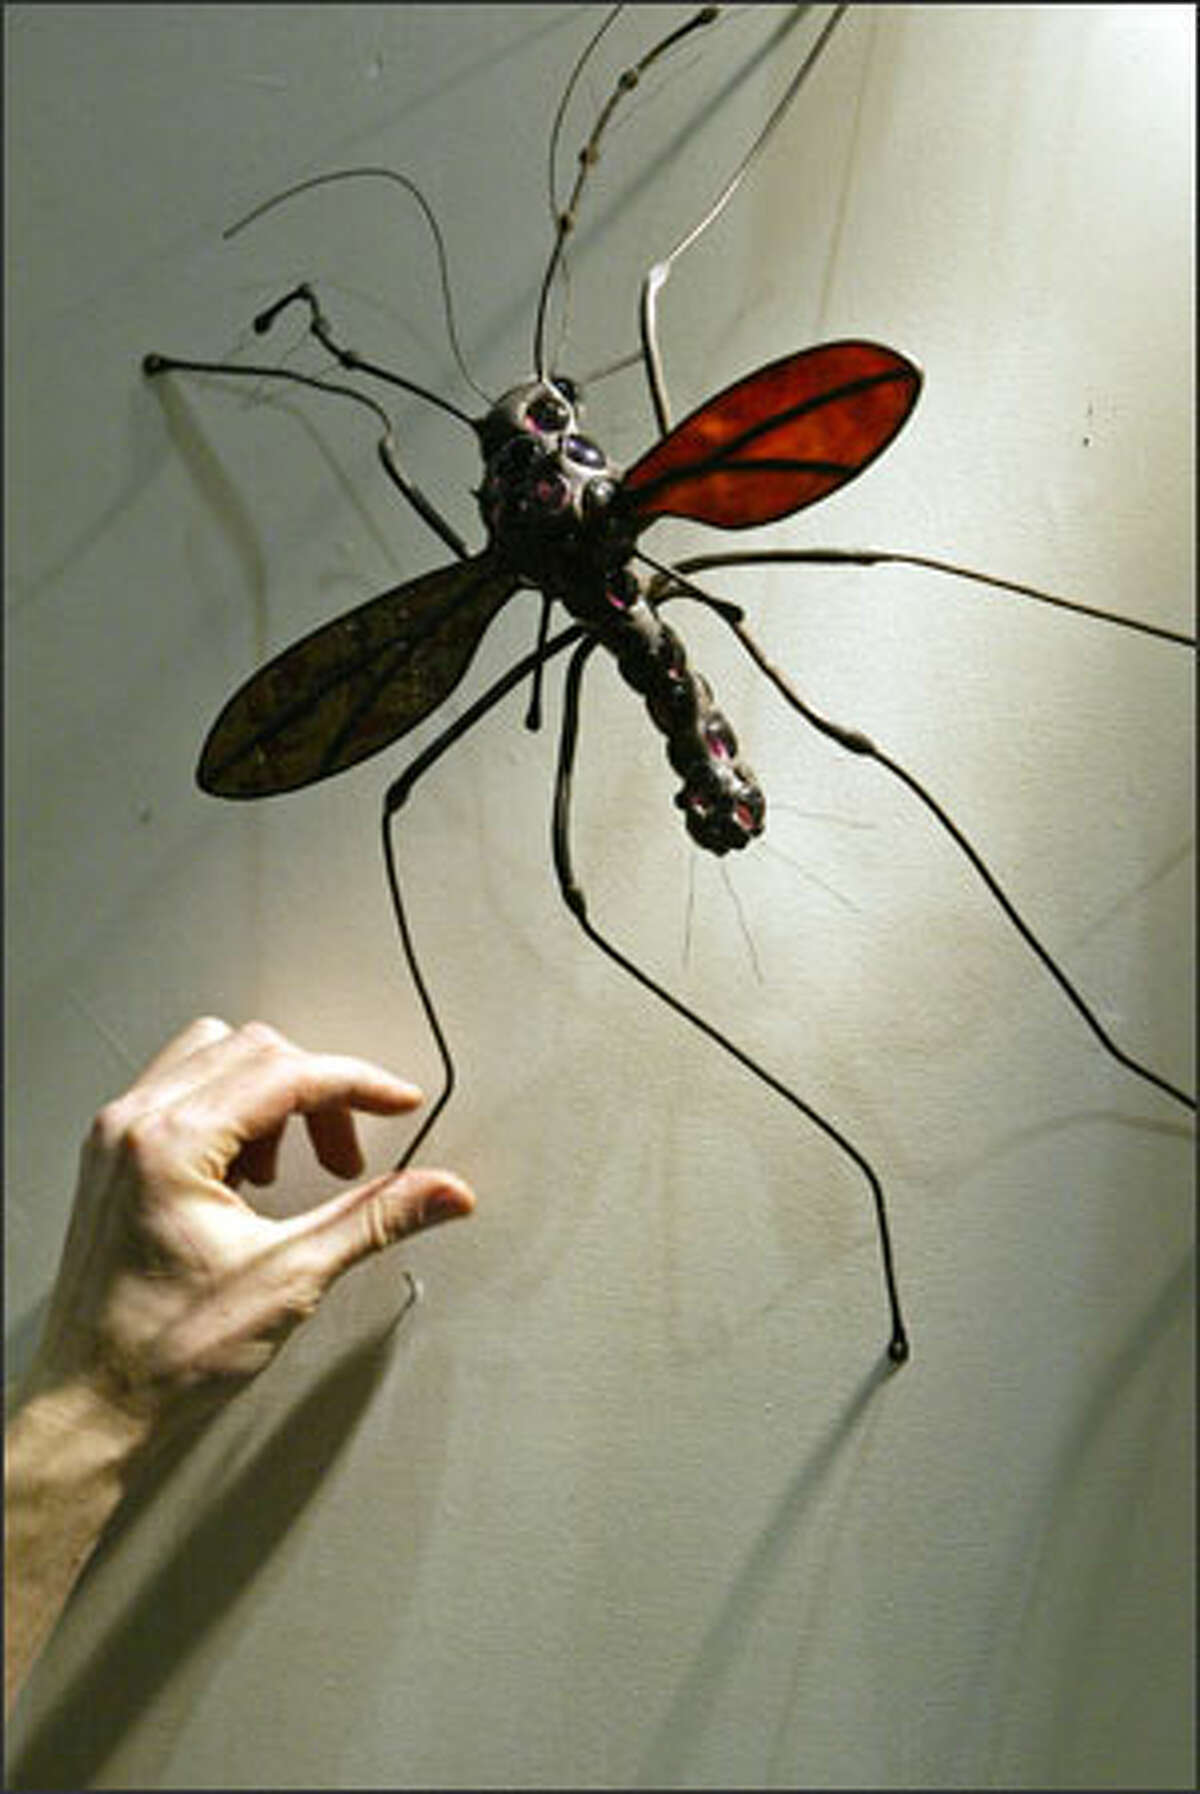 Artist Sean Goddard of Tofino, B.C., adjusts the legs of one of his larger-than-life (45x) copper and glass mosquitoes Tuesday as he prepares his vendor stall at the Northwest Flower & Garden Show in Seattle. Goddard is proud of his moniker,